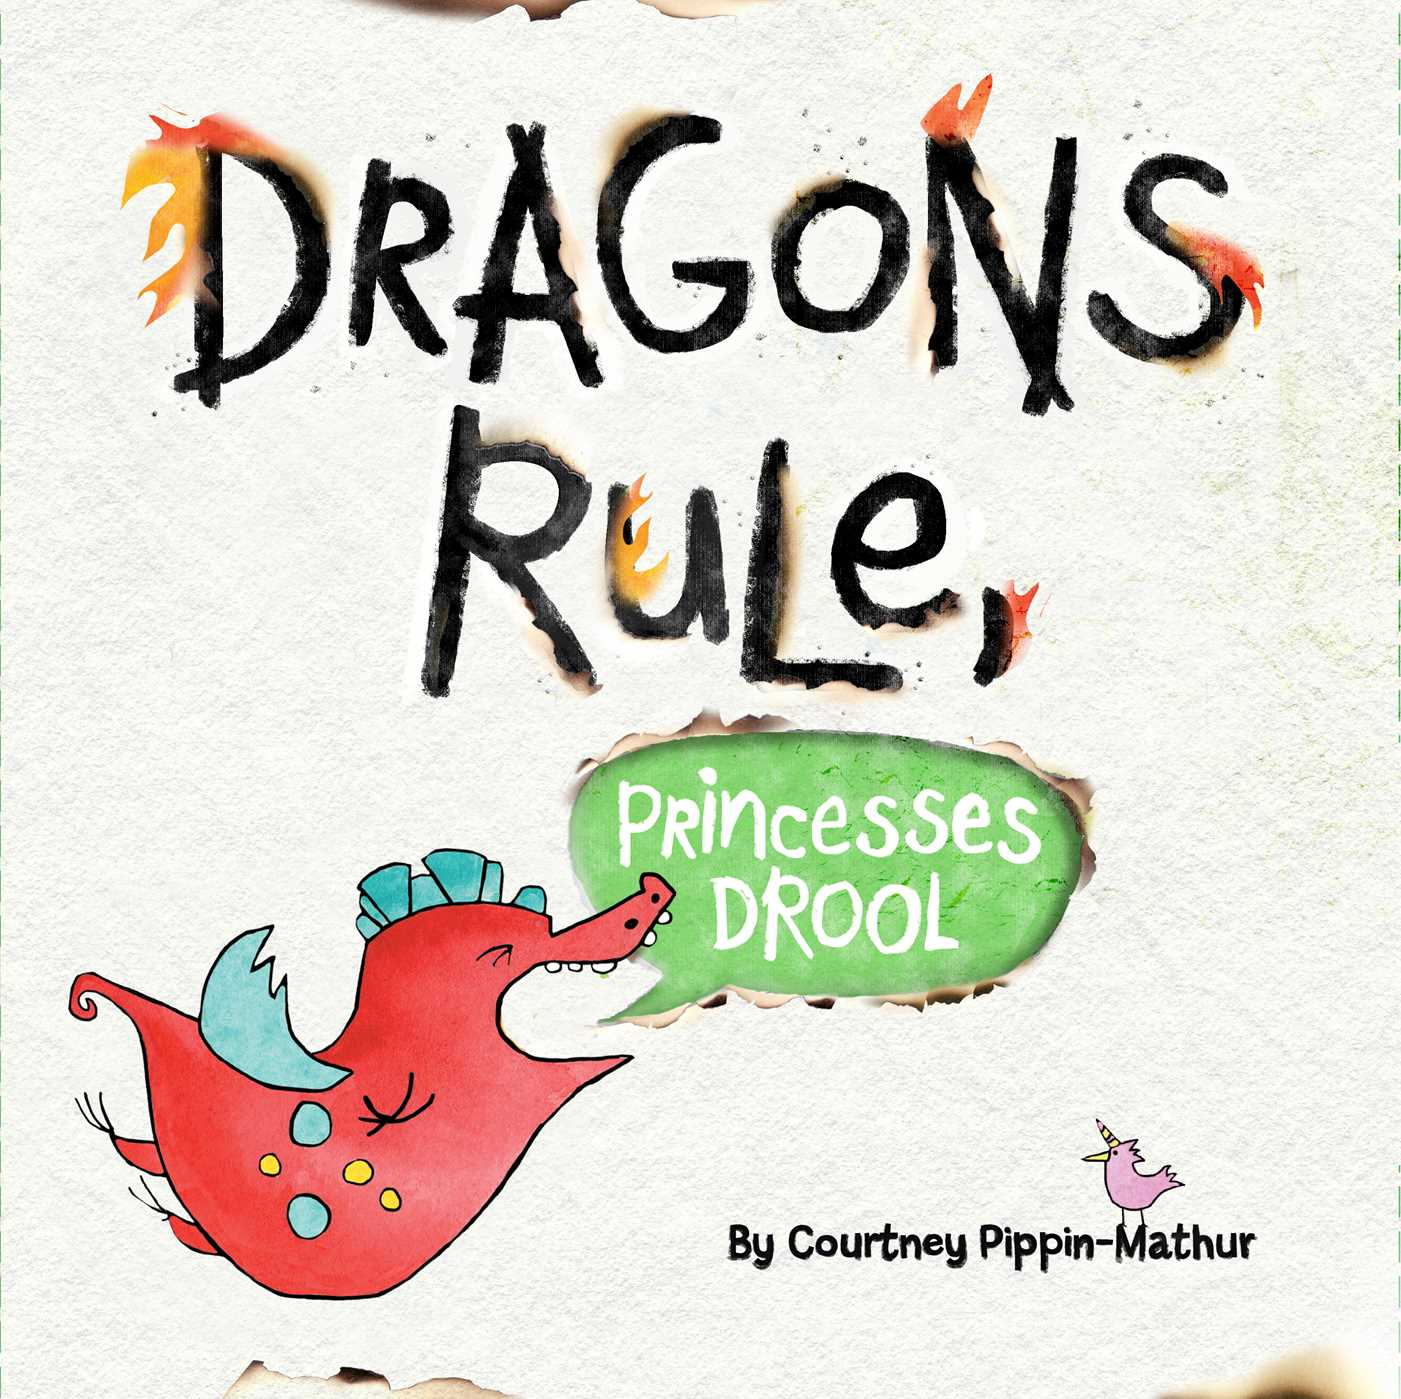 Dragons rule princesses drool 9781481461382 hr